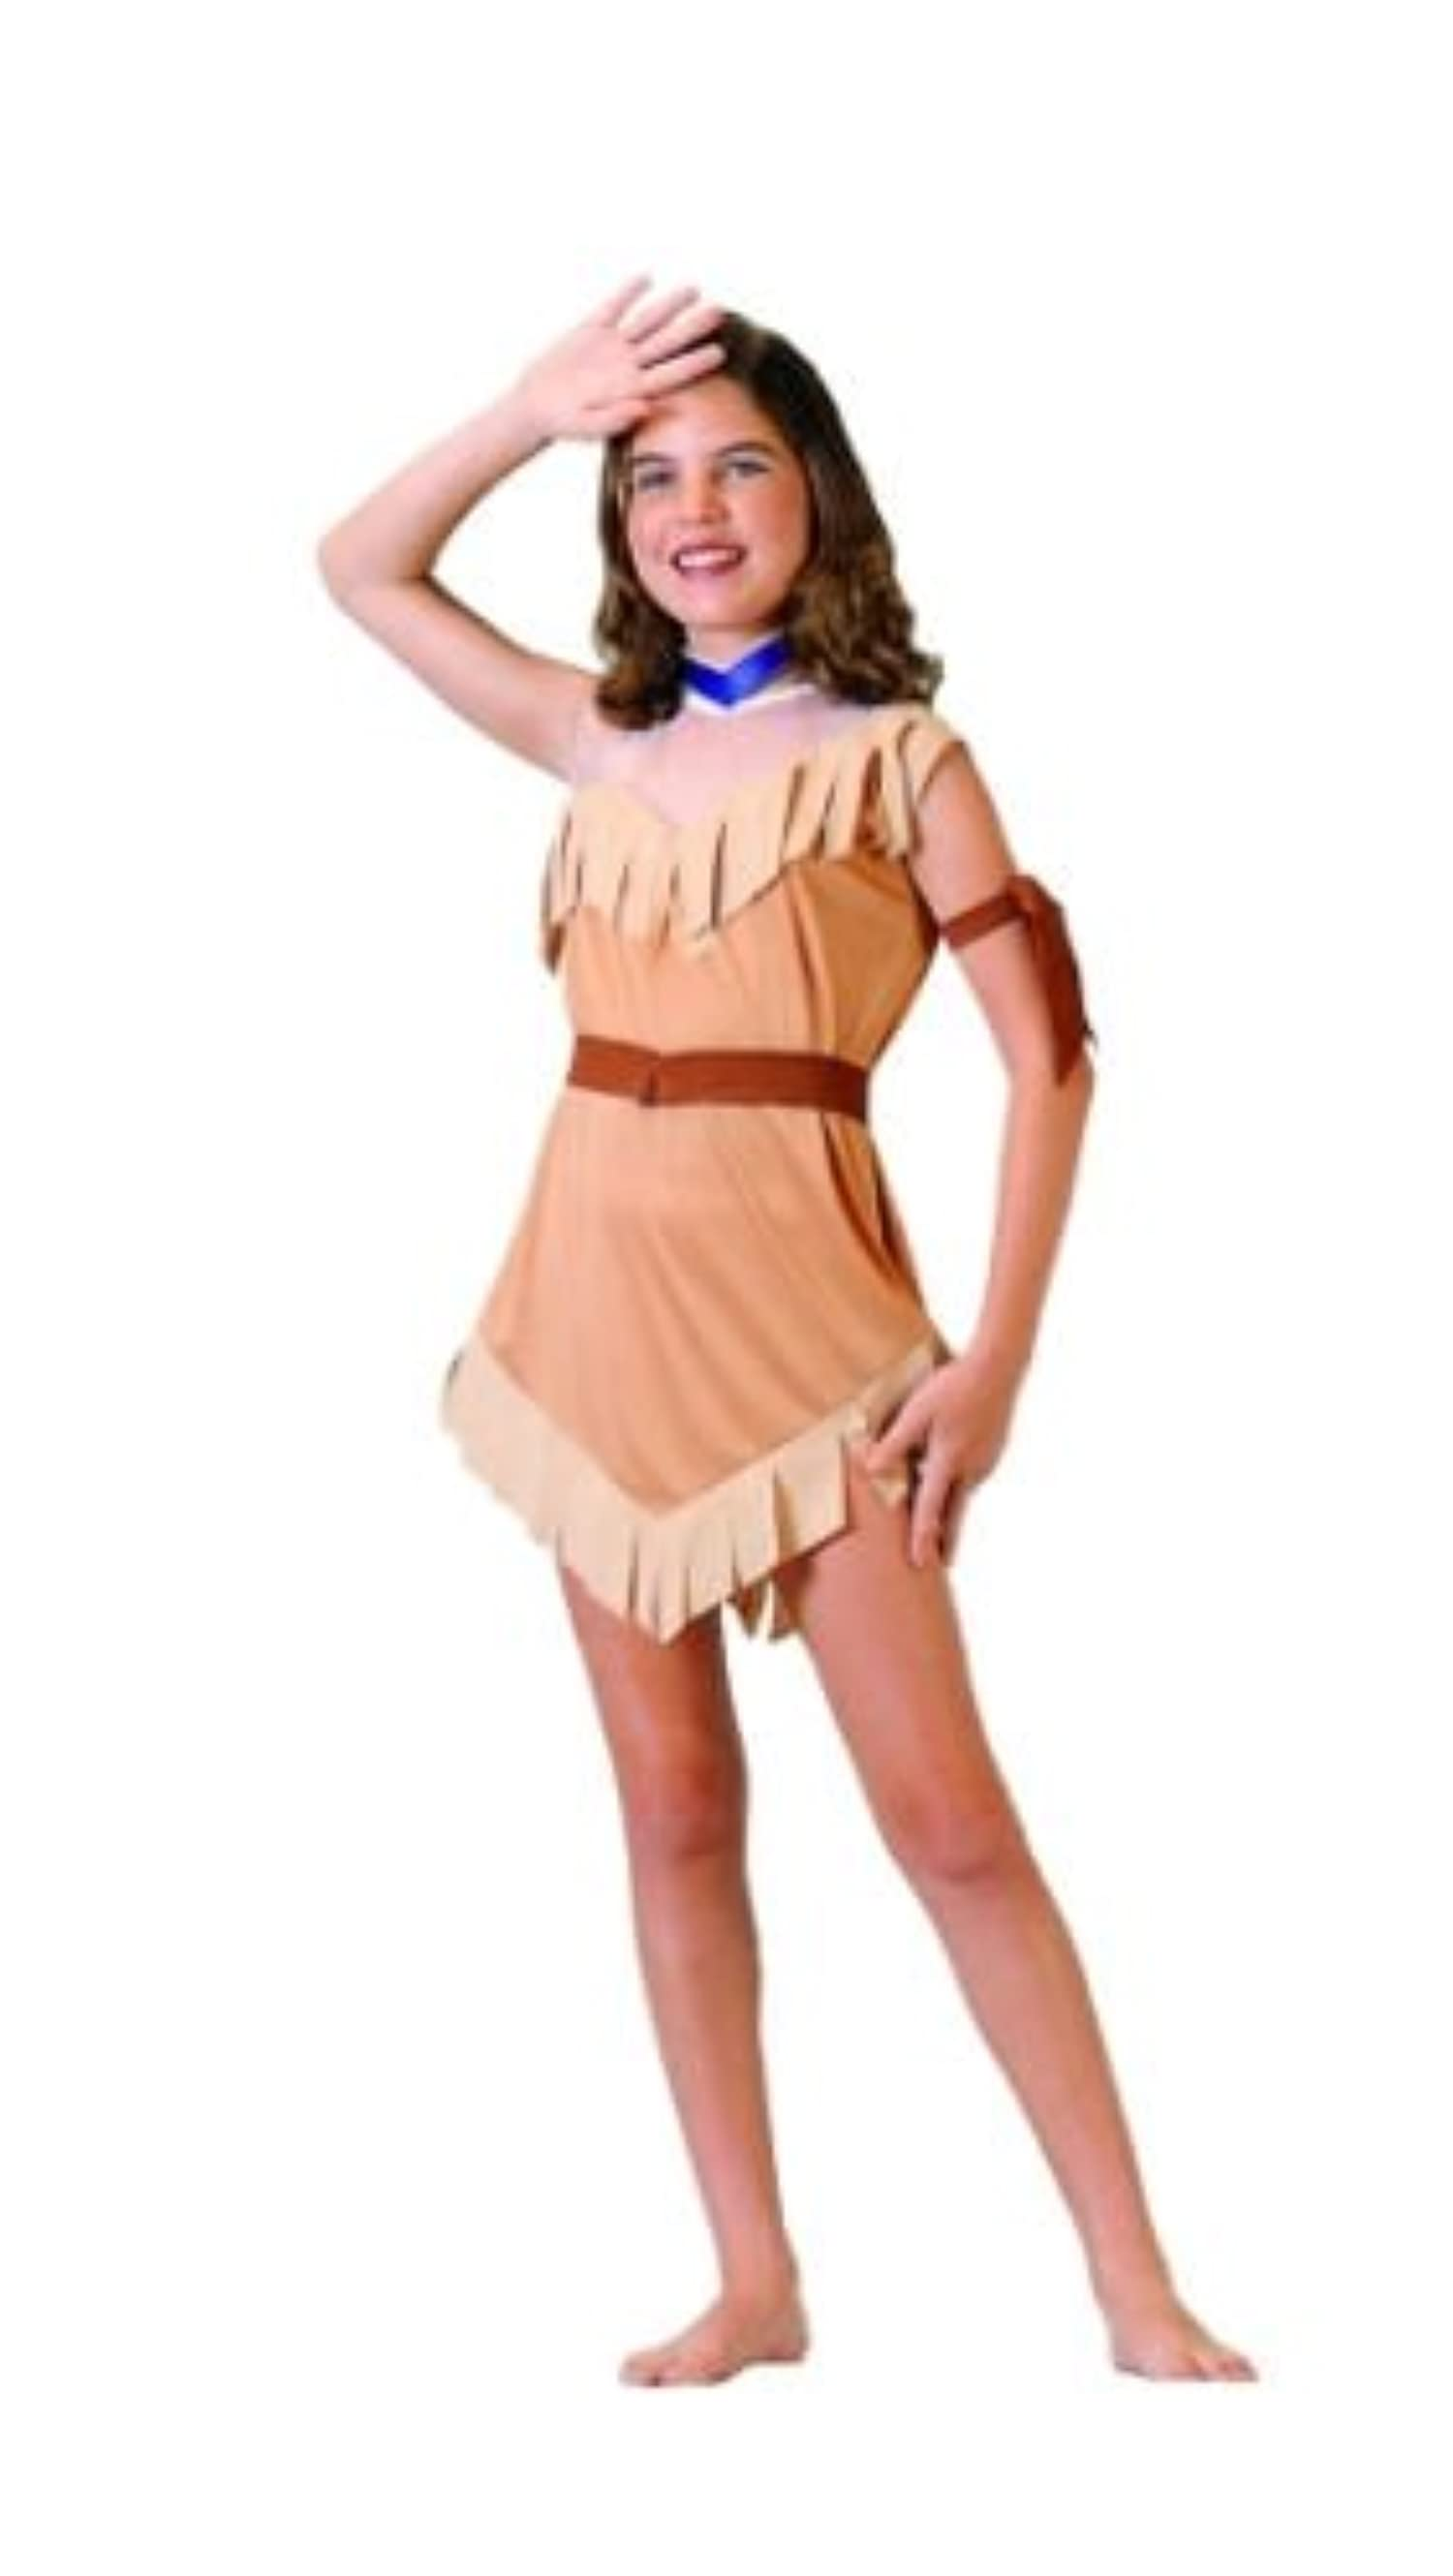 native american pocahontas girl costume indian princess. Black Bedroom Furniture Sets. Home Design Ideas